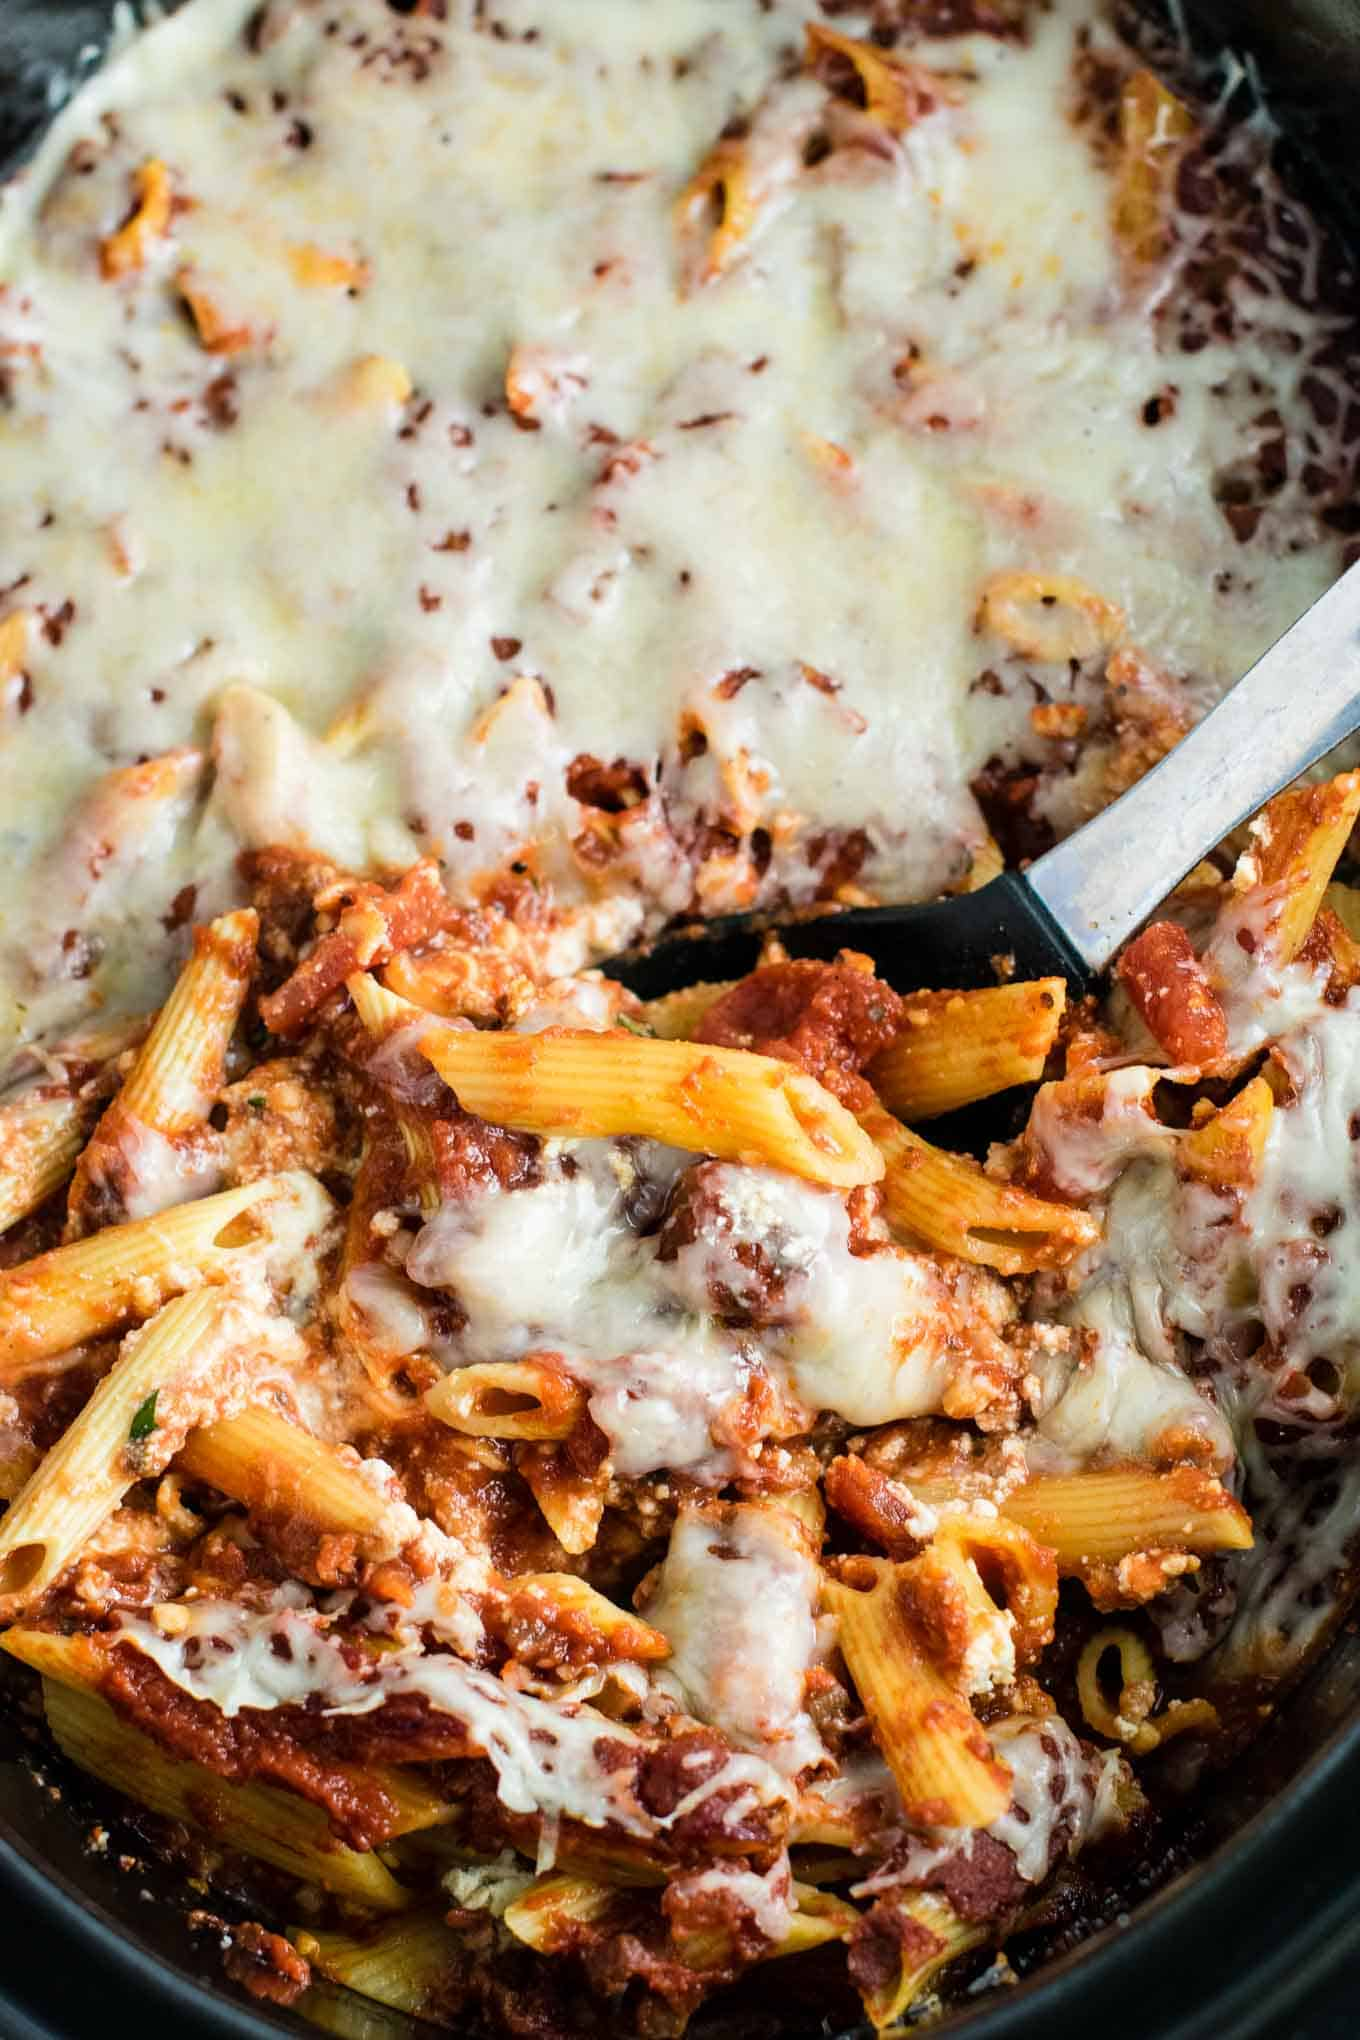 This Easy Crockpot Baked Ziti gets RAVE reviews. Everyone loves this when I make it! So simple to assemble and you don't even have to cook the noodles first! #crockpotbakedziti #ziti #pasta #slowcooker